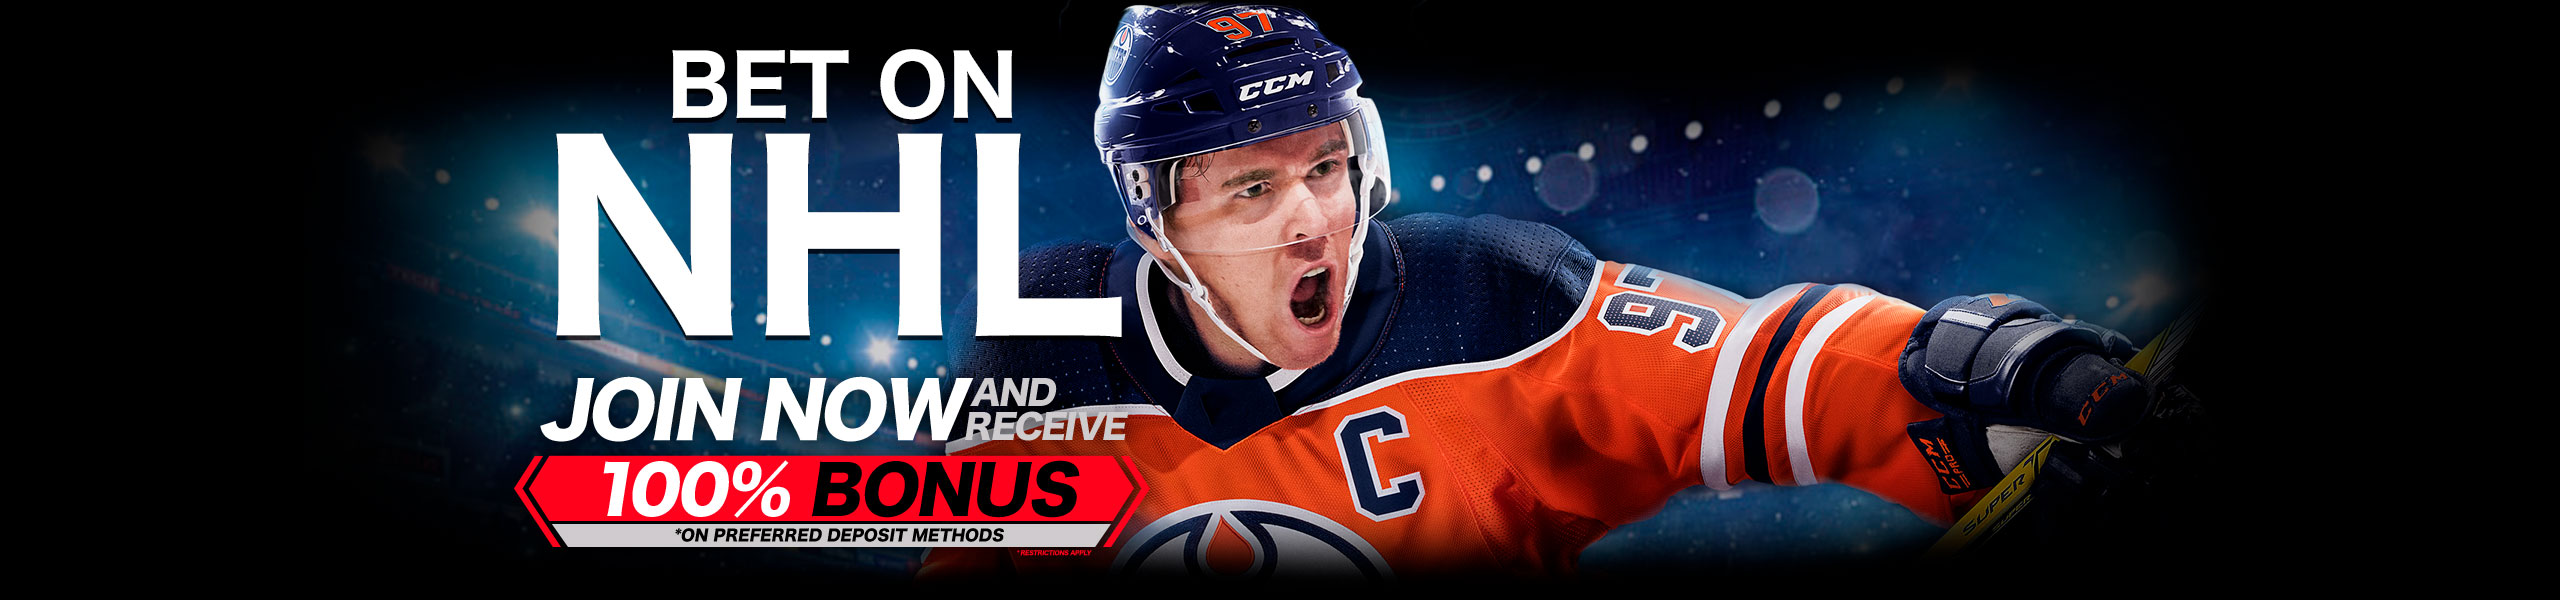 Bet on NHL 2018 100% Bonus